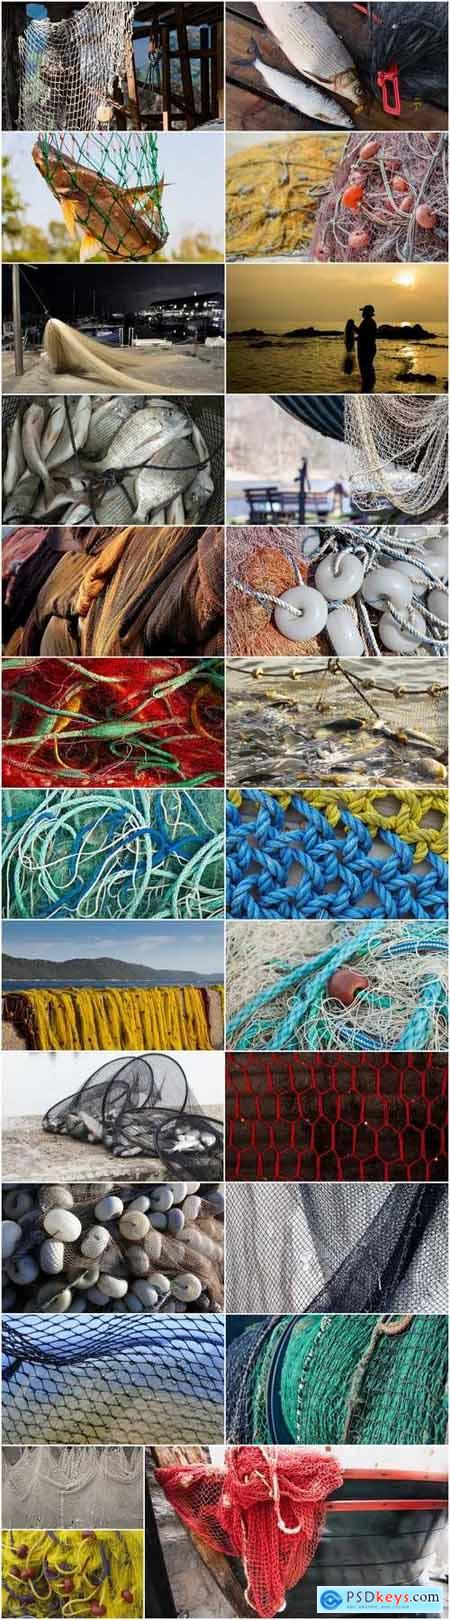 Fishing net Hunting tackle 25 HQ Jpeg